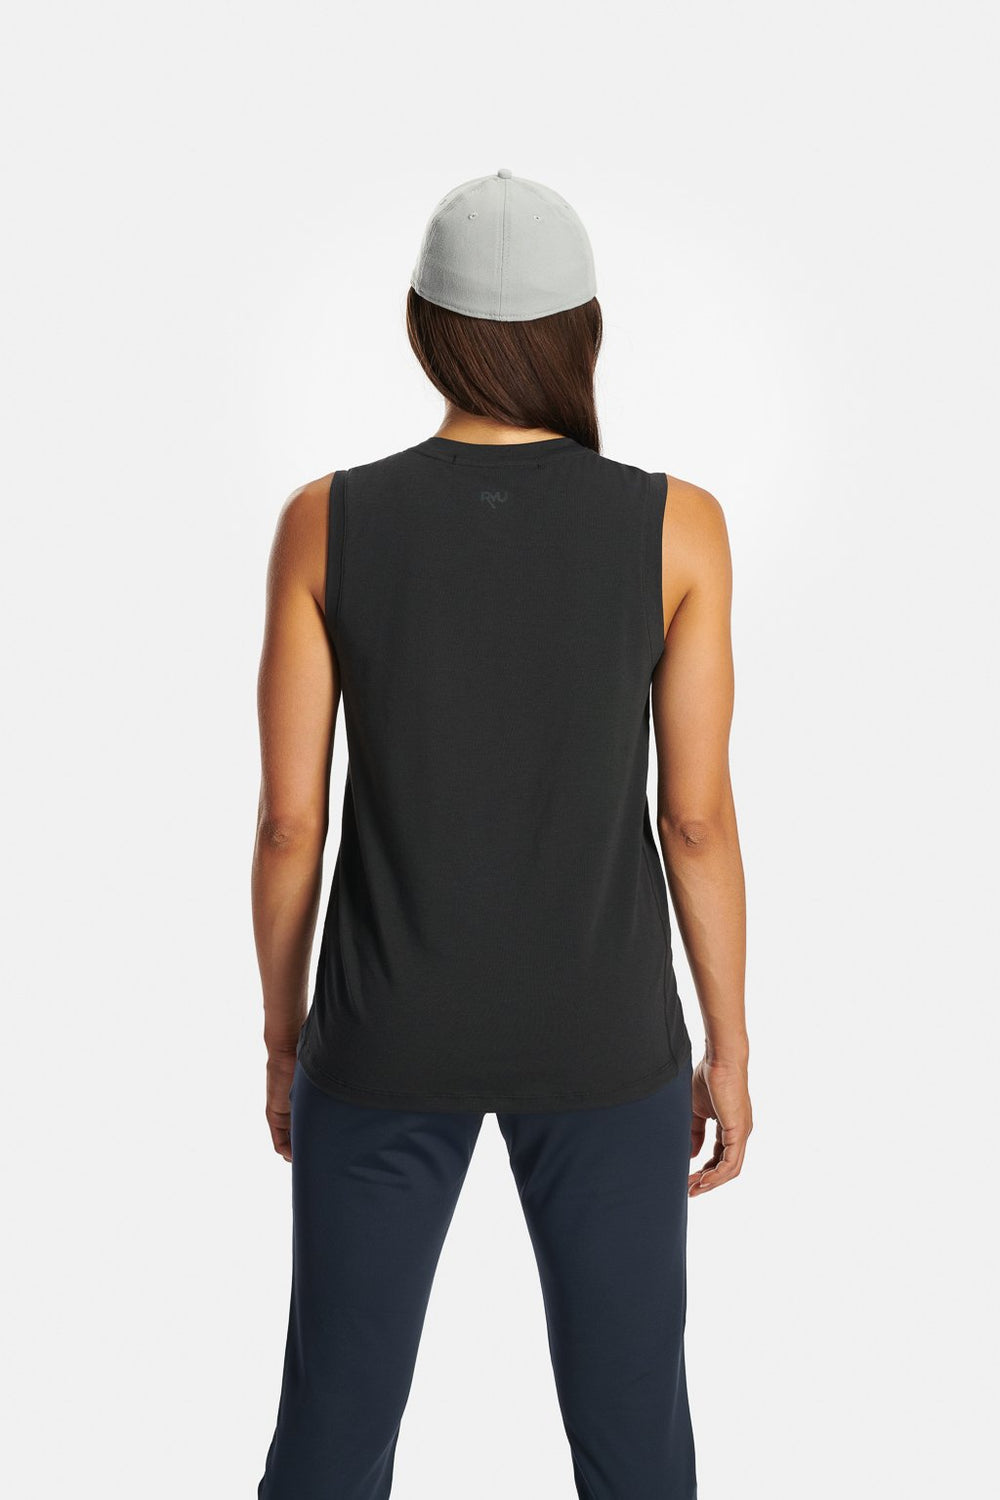 RYU Womens Standard Issue Tank in Asphalt Heather